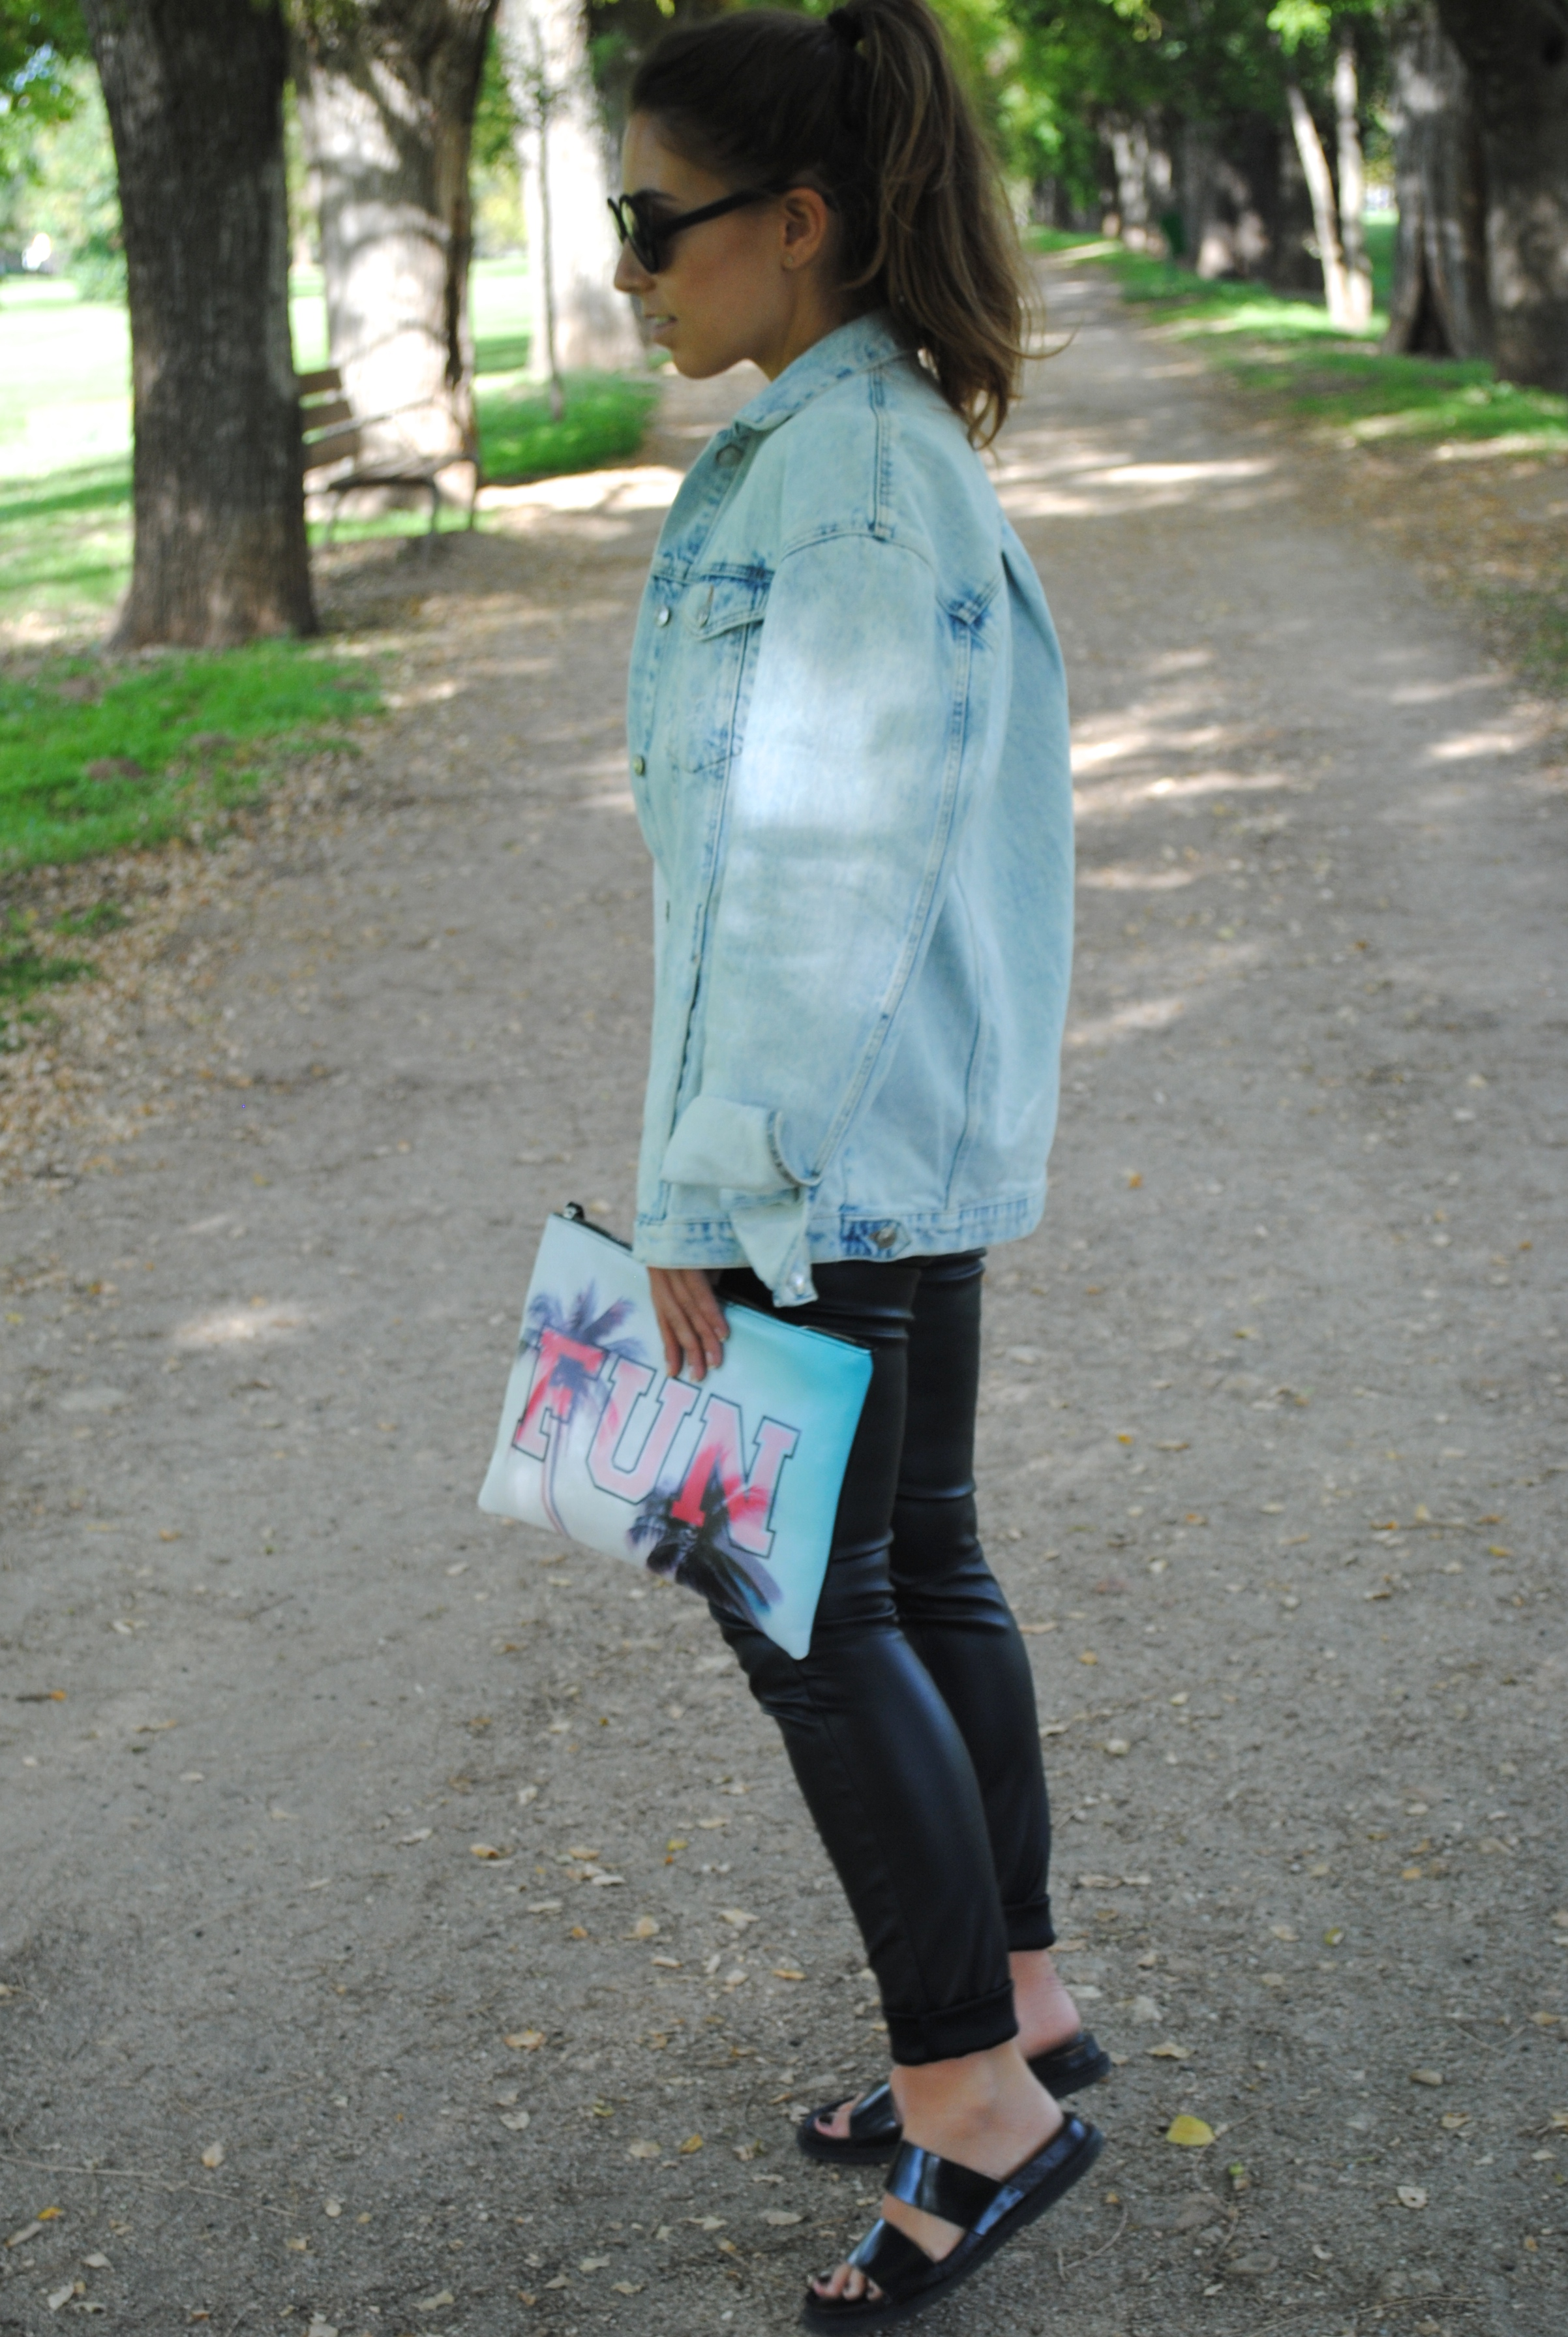 denim and leather combination